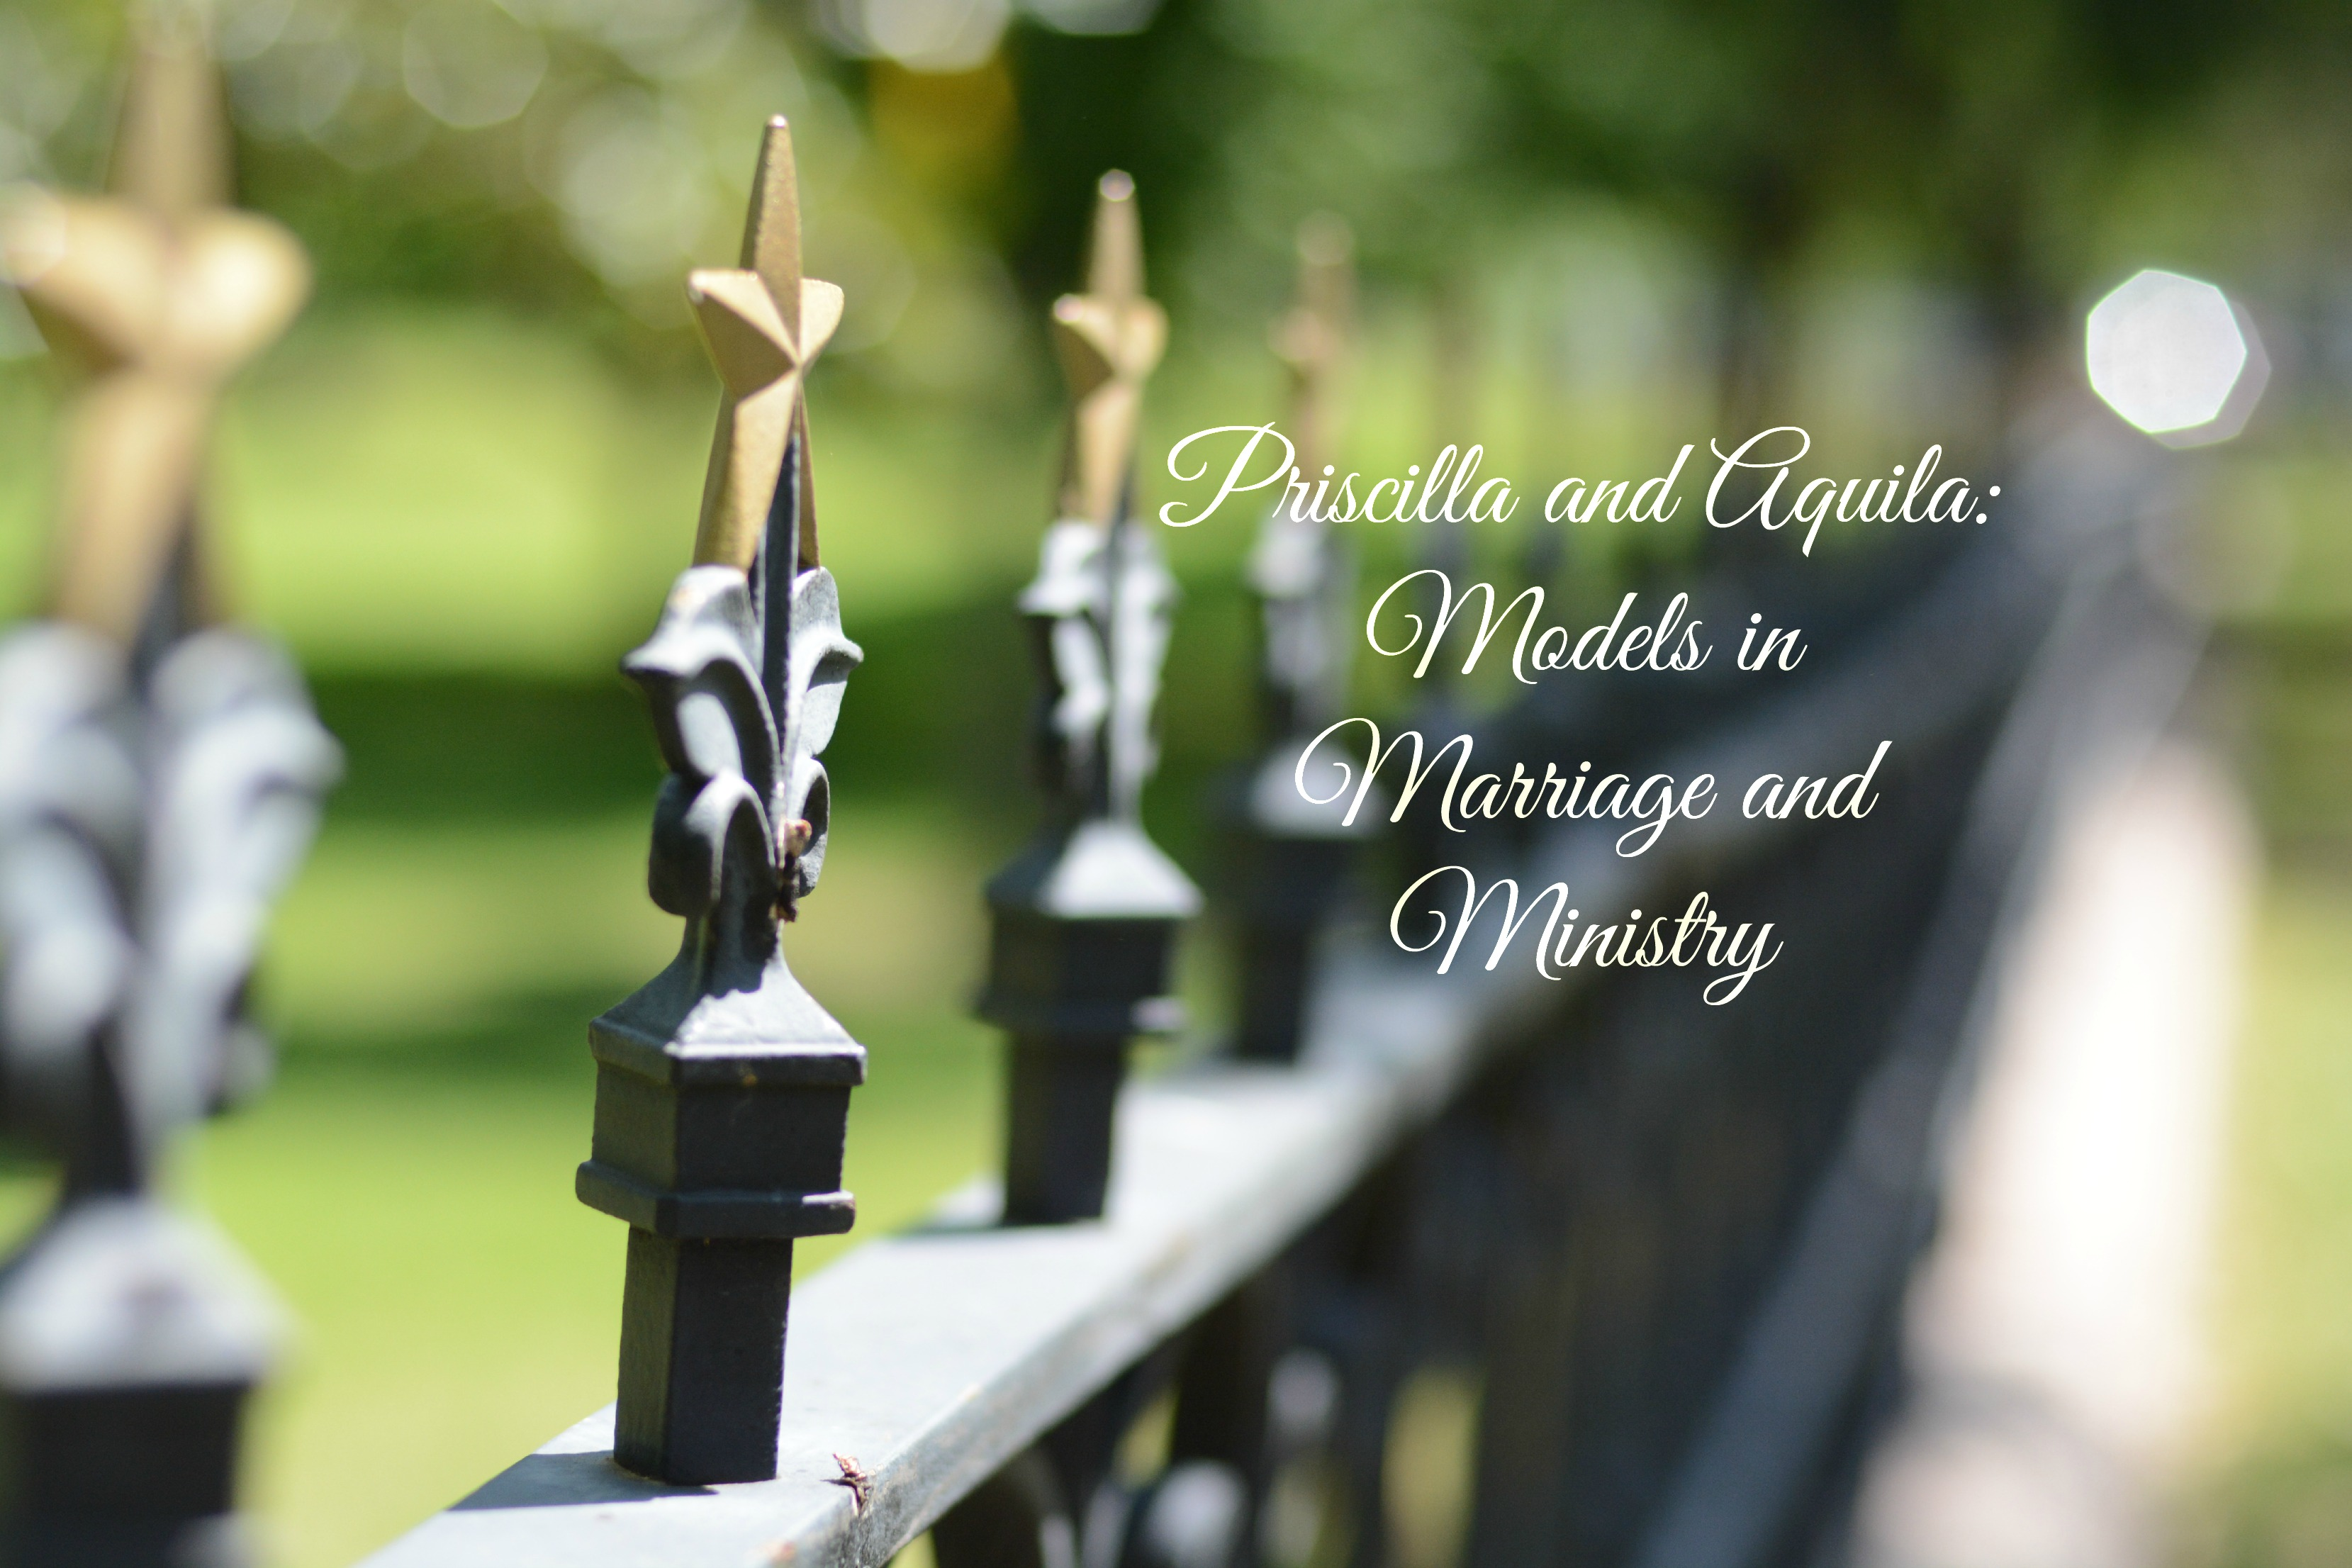 Priscilla And Aquila Models In Marriage And Ministry